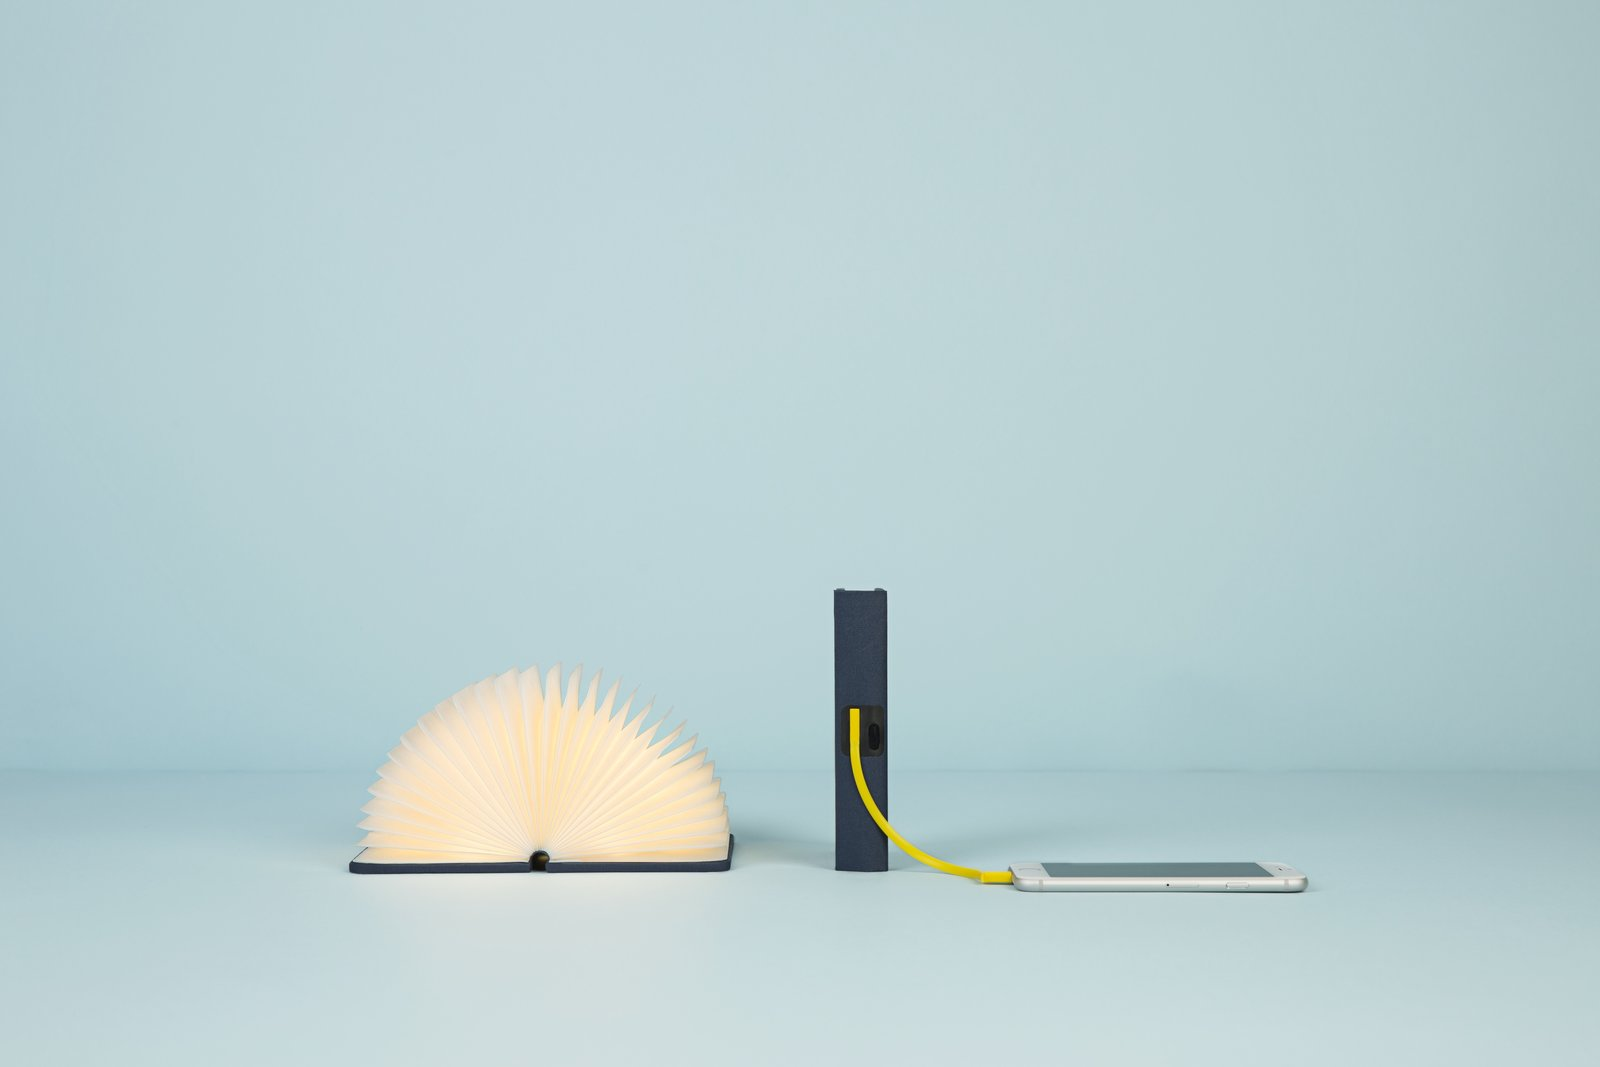 """Mini Lumio+ by Max Gunawan for Lumio, $125 at hellolumio.com  An extra lightweight companion to the original Lumio, a literal book light created by architect Max Gunawan, the mini Lumio+ achieves the same spellbinding LED effect as its predecessor, while also providing a portable means to charge electronics.  Search """"diana mini"""" from Editor's Picks: New Gifts for the Tech Geek"""